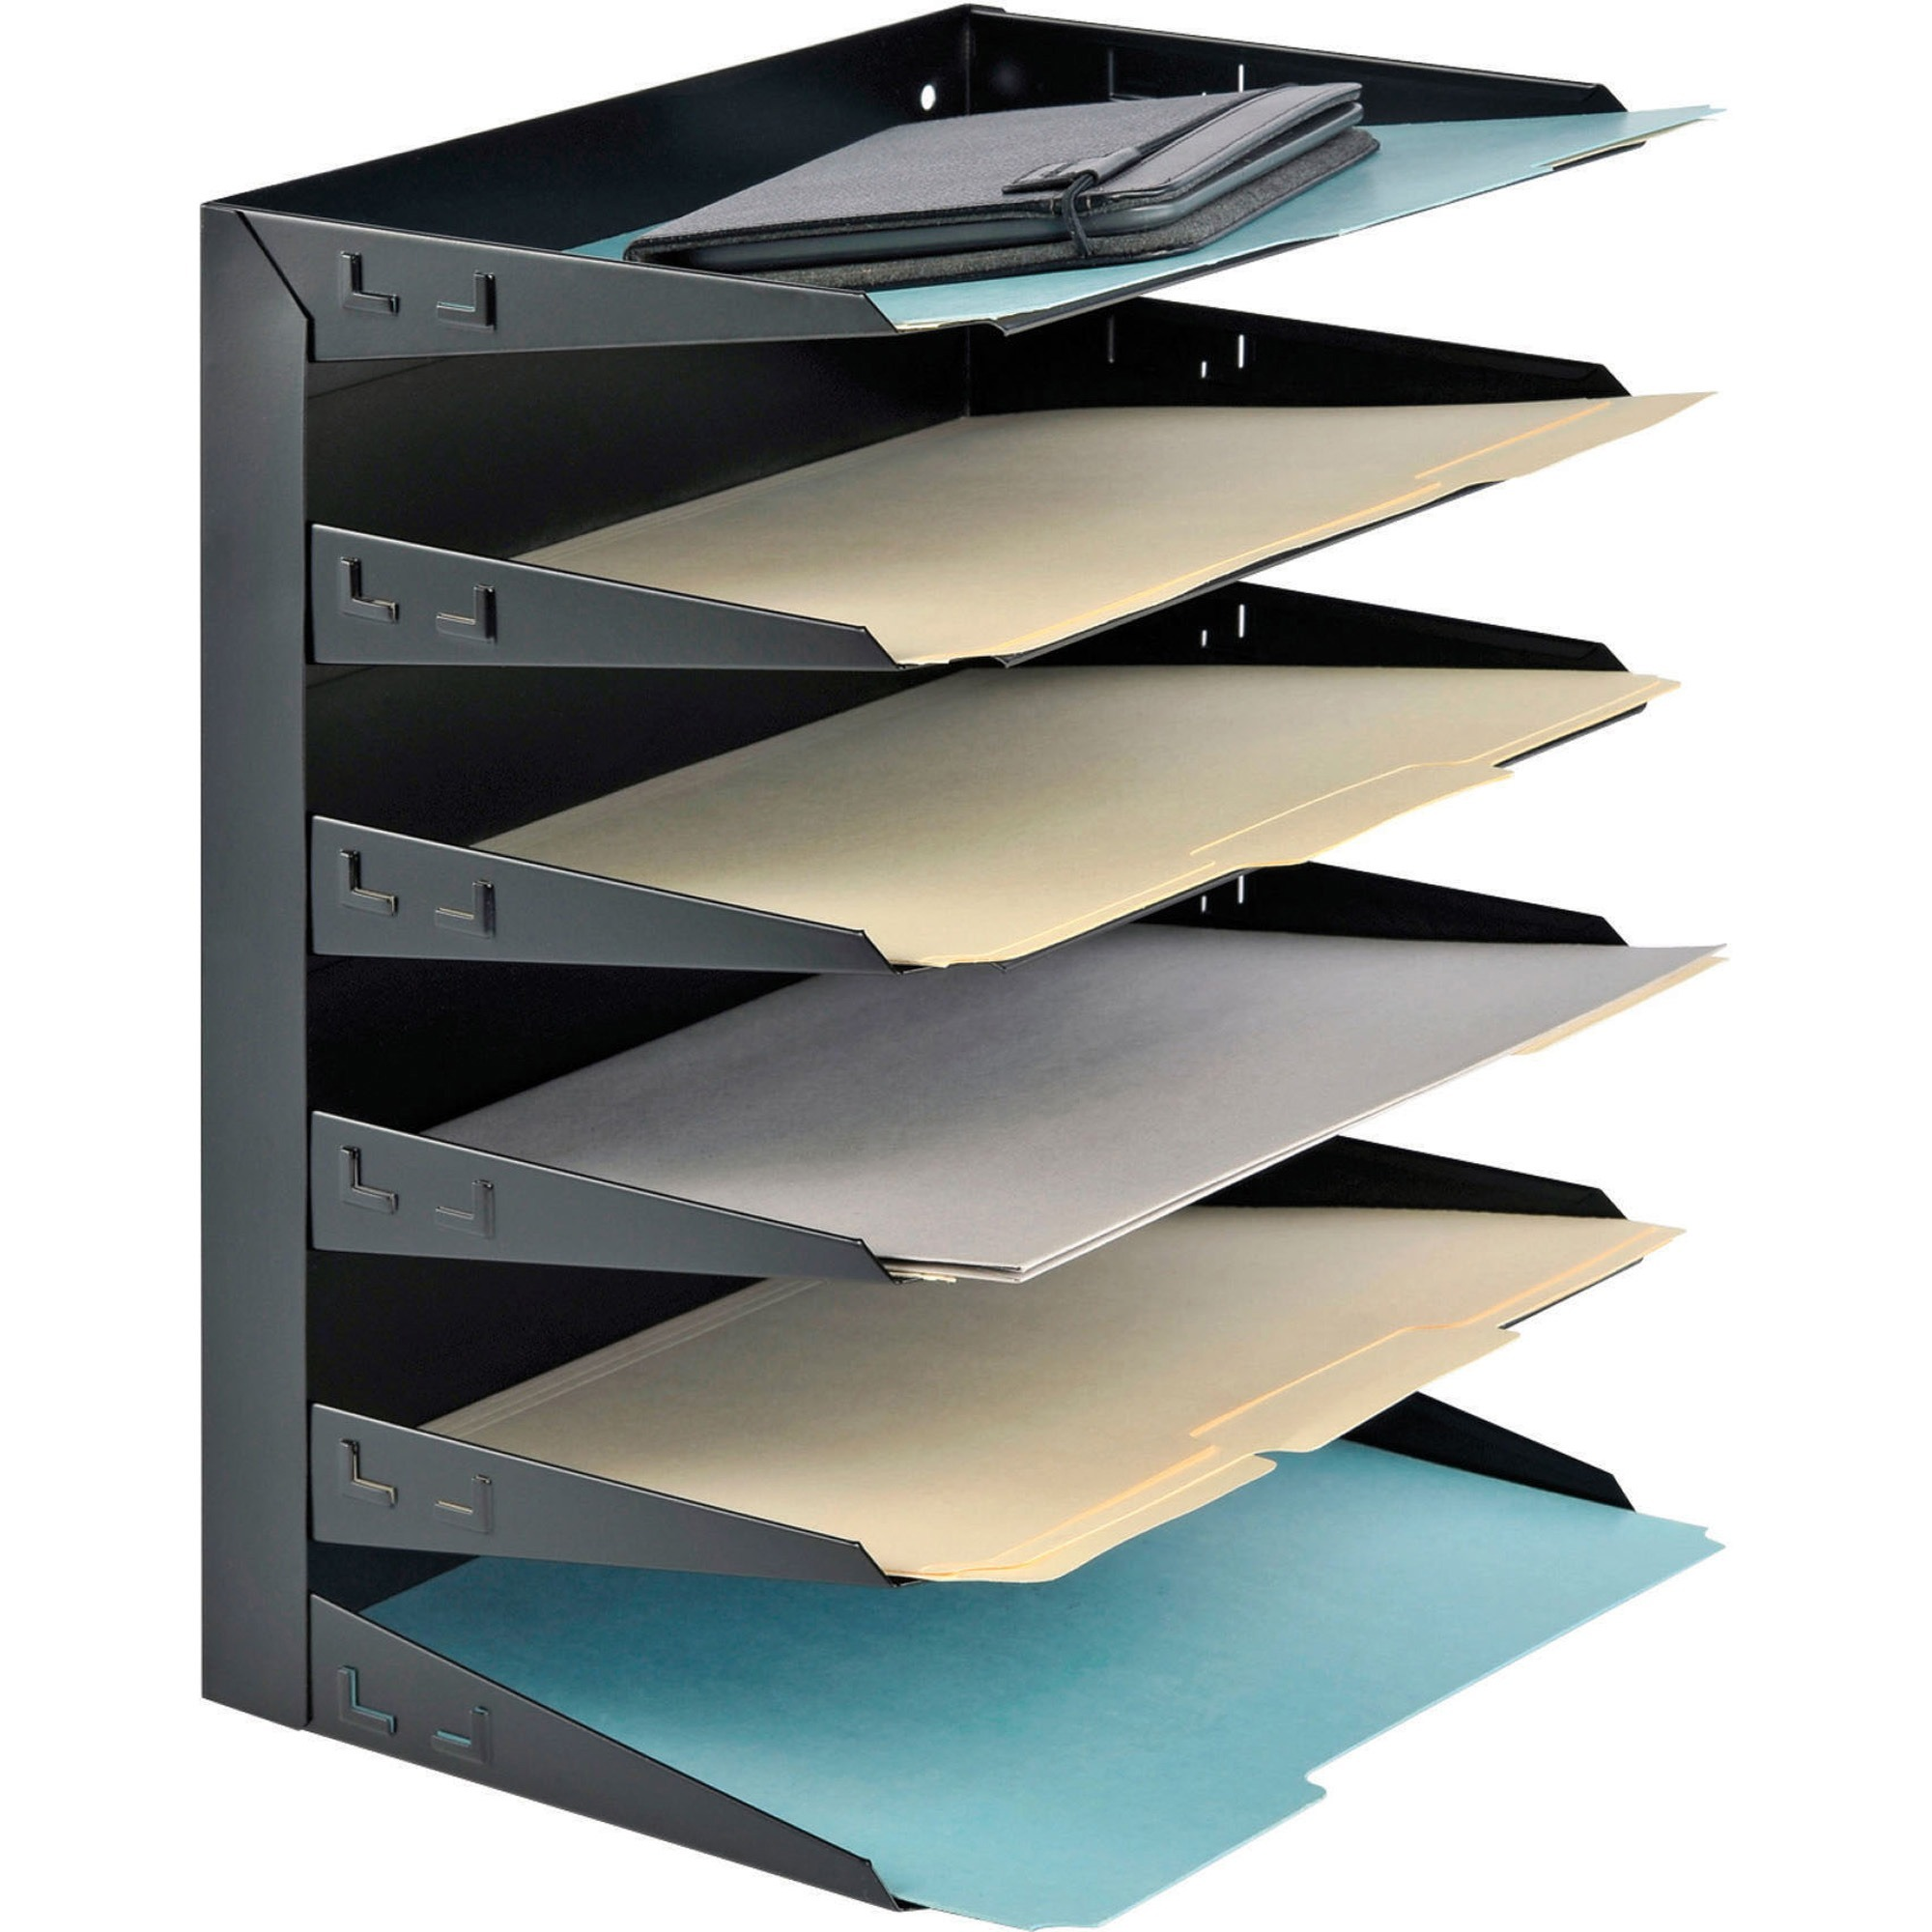 Mmf Horizontal Desk File Trays 6 Compartment S Tier